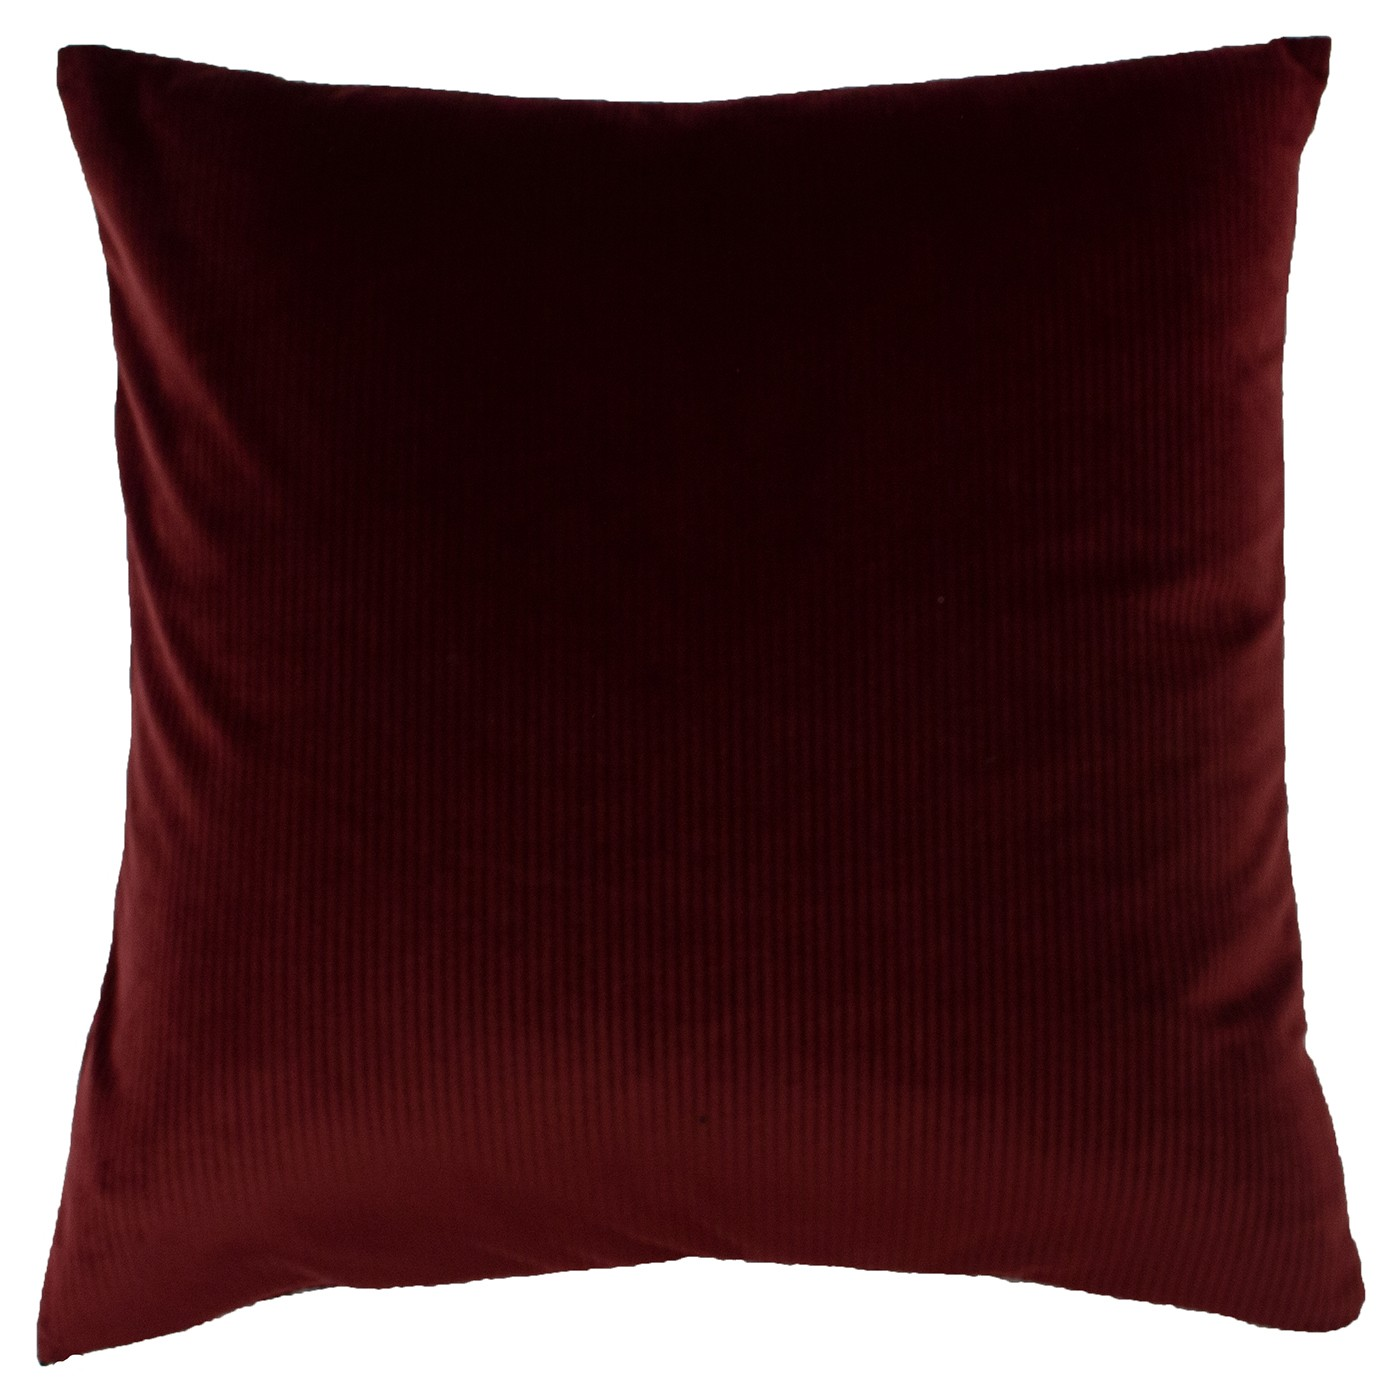 The Home Furnishings Company Aurora Ox Blood Velvet Corduroy Cushion 45x45cms